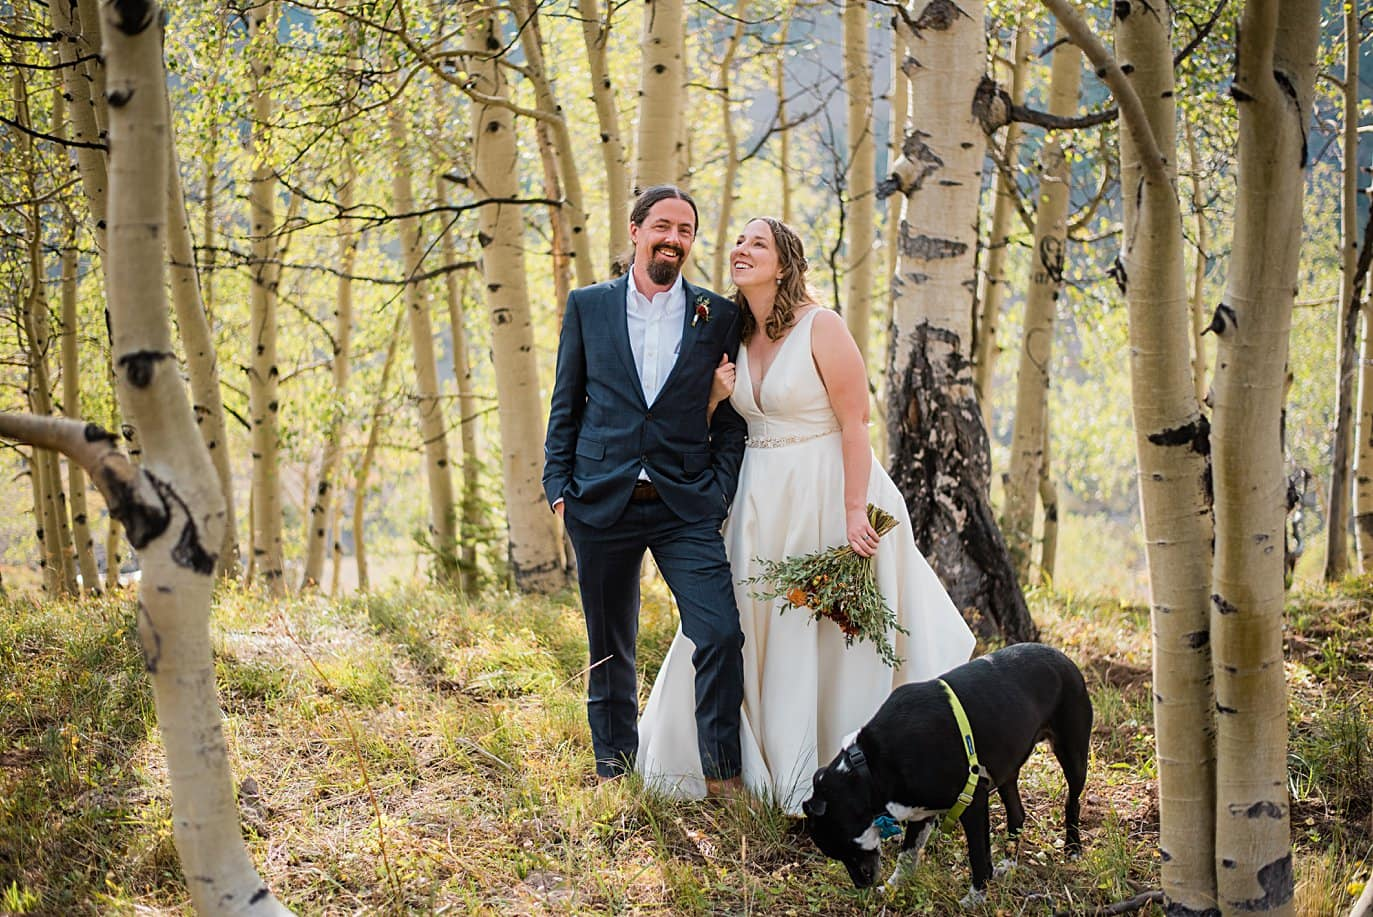 bride and groom with dog after ceremony in aspen trees in Colorado by Colorado wedding photographer Jennie Crate